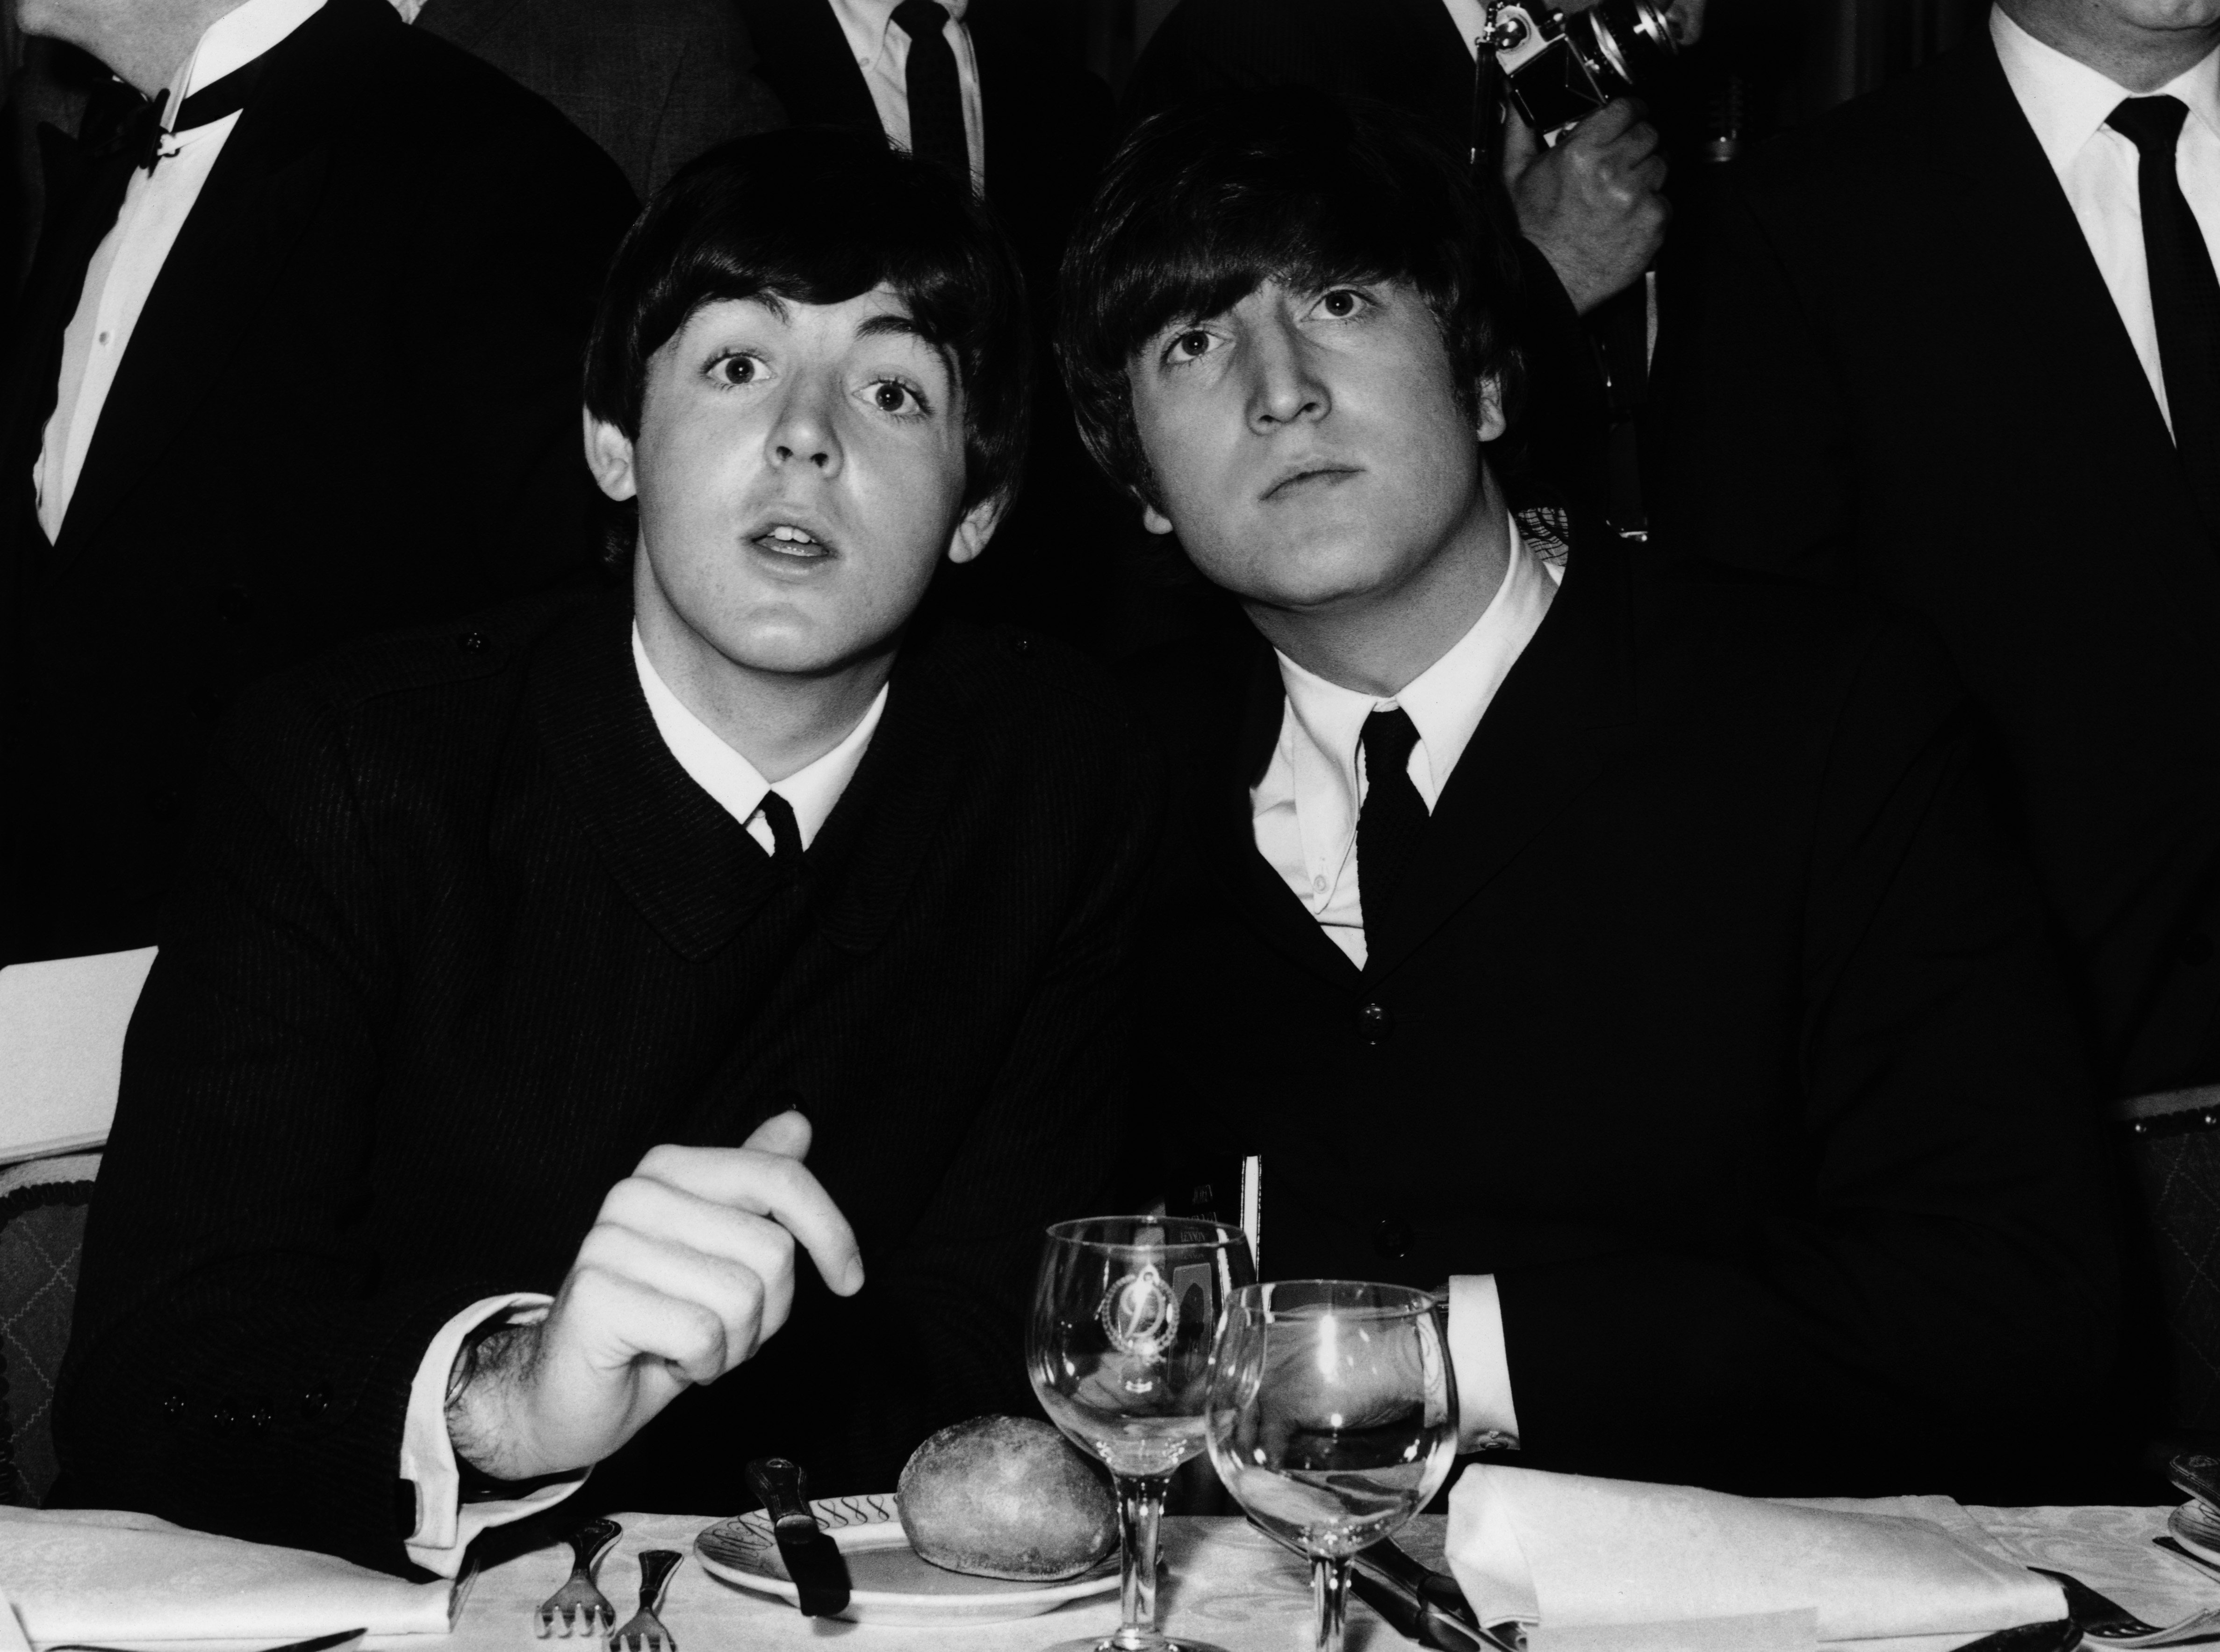 John Lennon and Paul McCartney during 1963. | Source: Getty Images